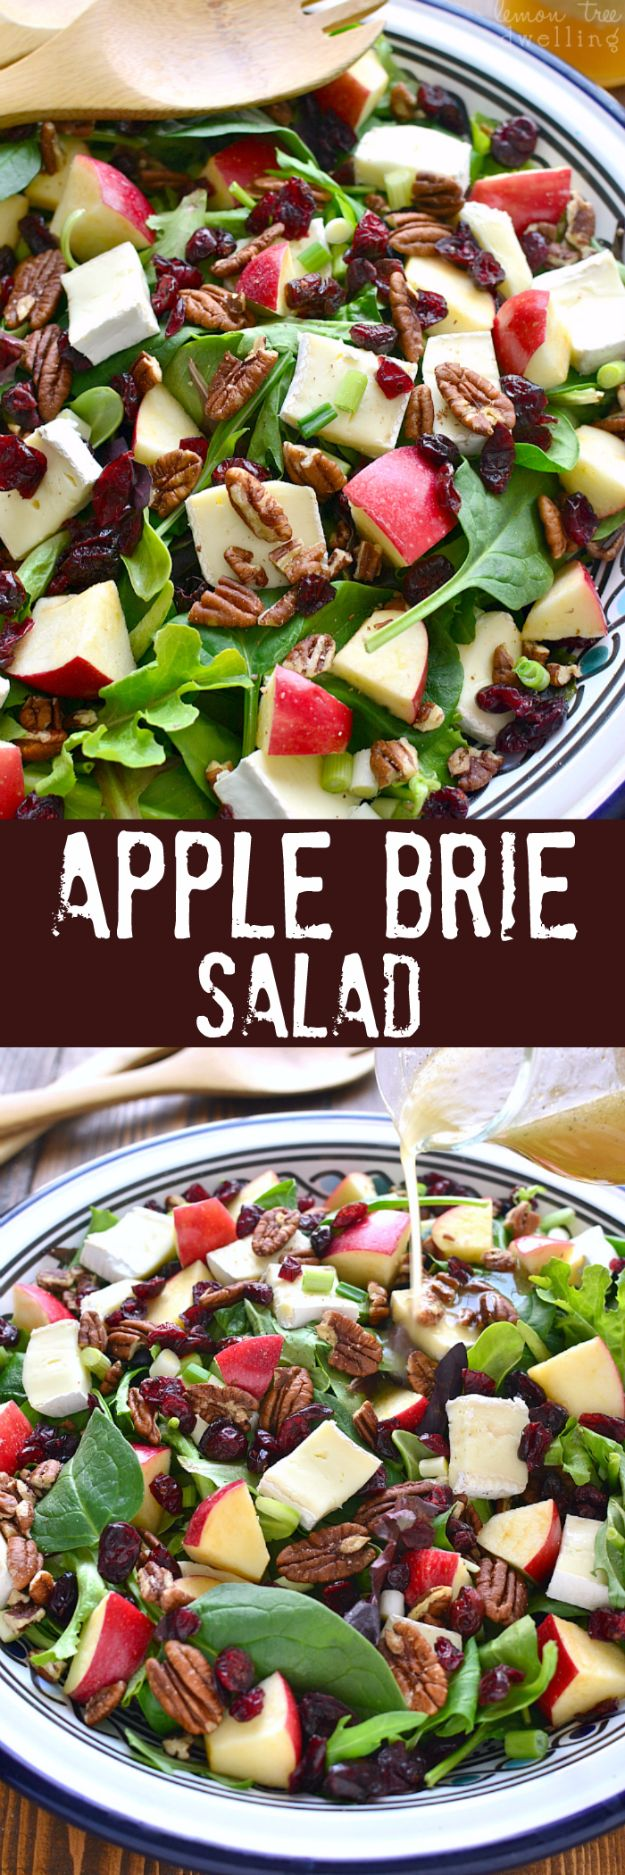 Best Dinner Salad Recipes - Apple Brie Salad - Easy Salads to Make for Quick and Healthy Dinners - Healthy Chicken, Egg, Vegetarian, Steak and Shrimp Salad Ideas - Summer Side Dishes, Hearty Filling Meals, and Low Carb Options #saladrecipes #dinnerideas #salads #healthyrecipes